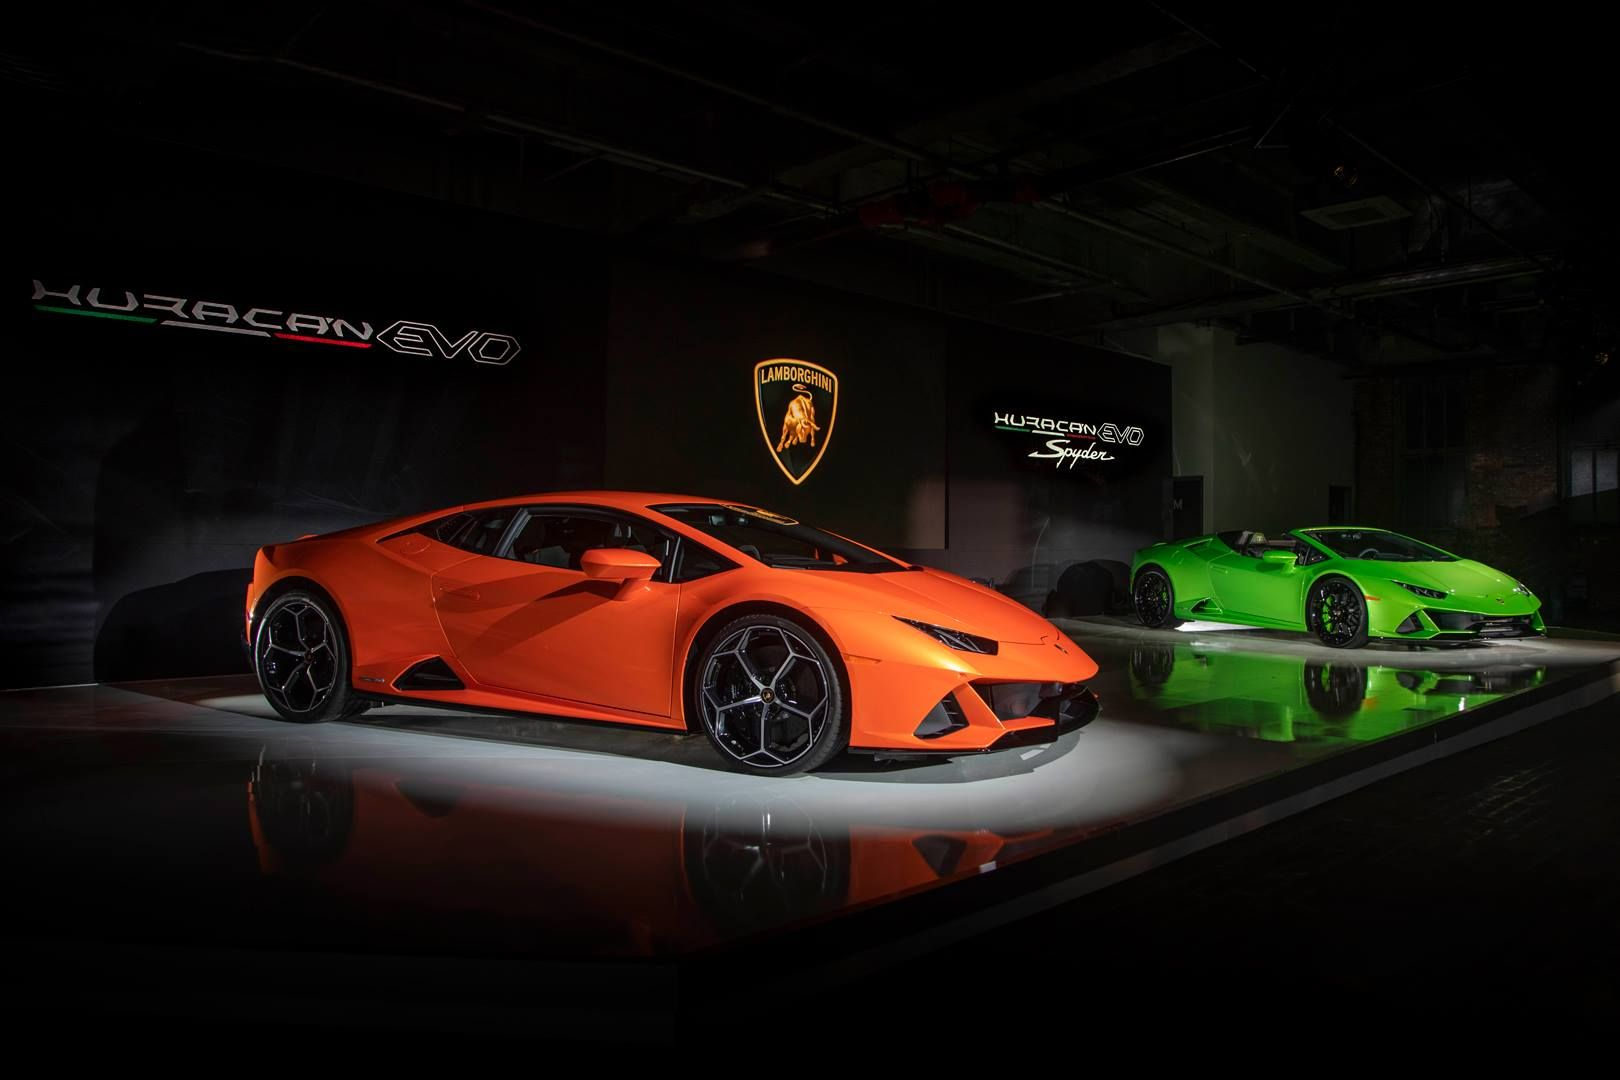 Lamborghini Huracan Evo And Huracan Evo Spyder Pricing For South Africa Lamborghini Huracan Lamborghini Sports Cars Luxury